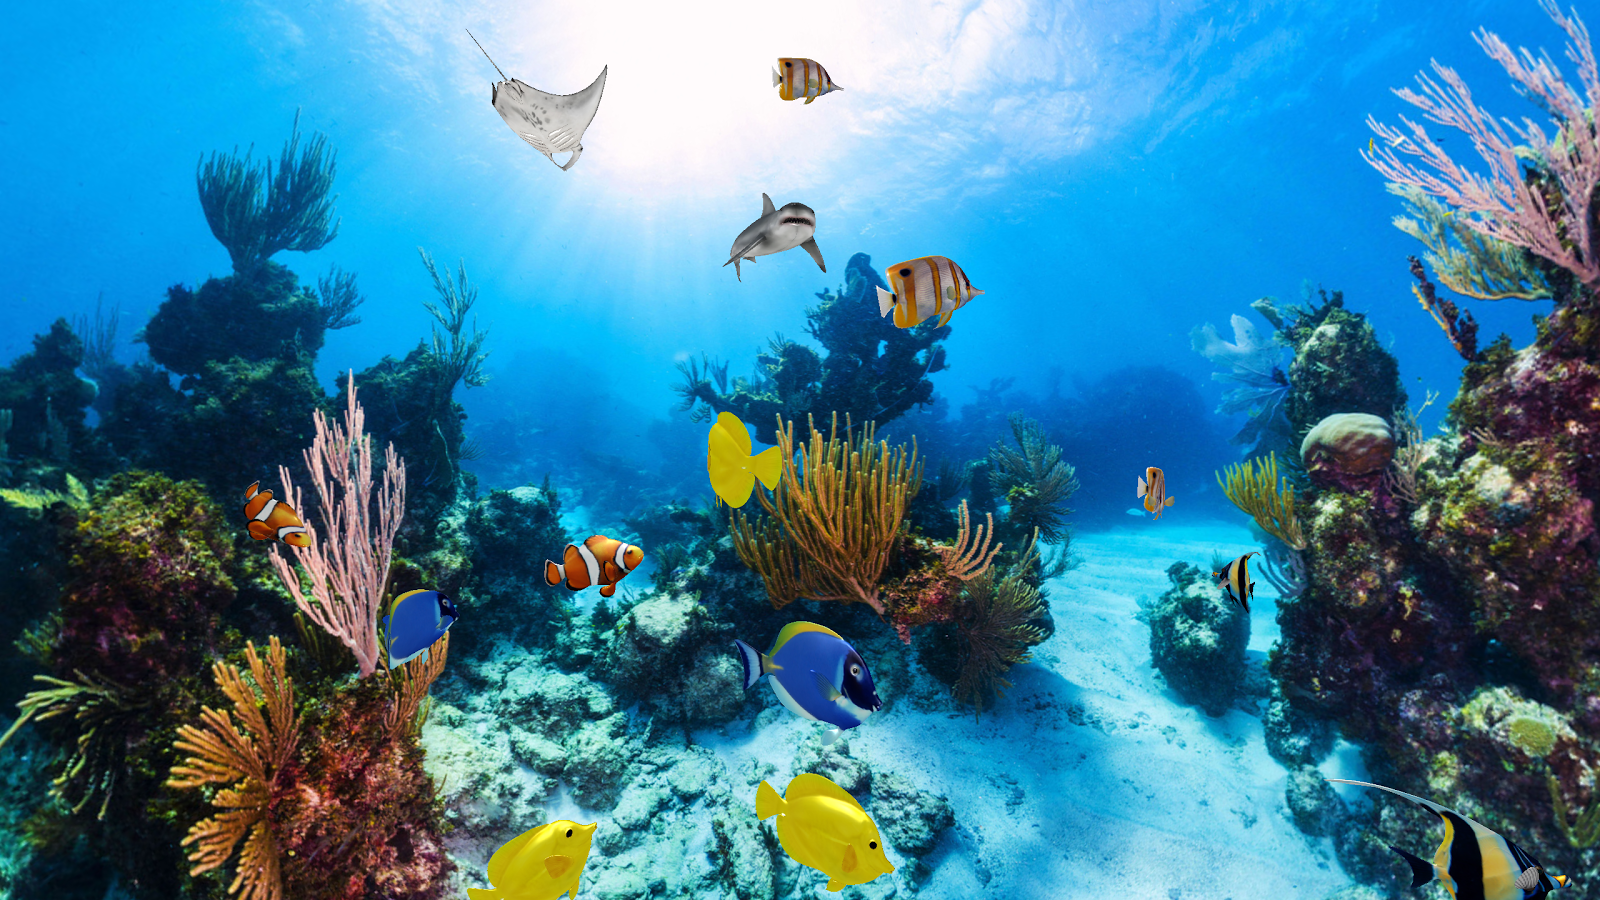 ... Free Download Aquarium Live Wallpaper For Windows 8: 3d Aquarium Wallpaper For Windows 8 :